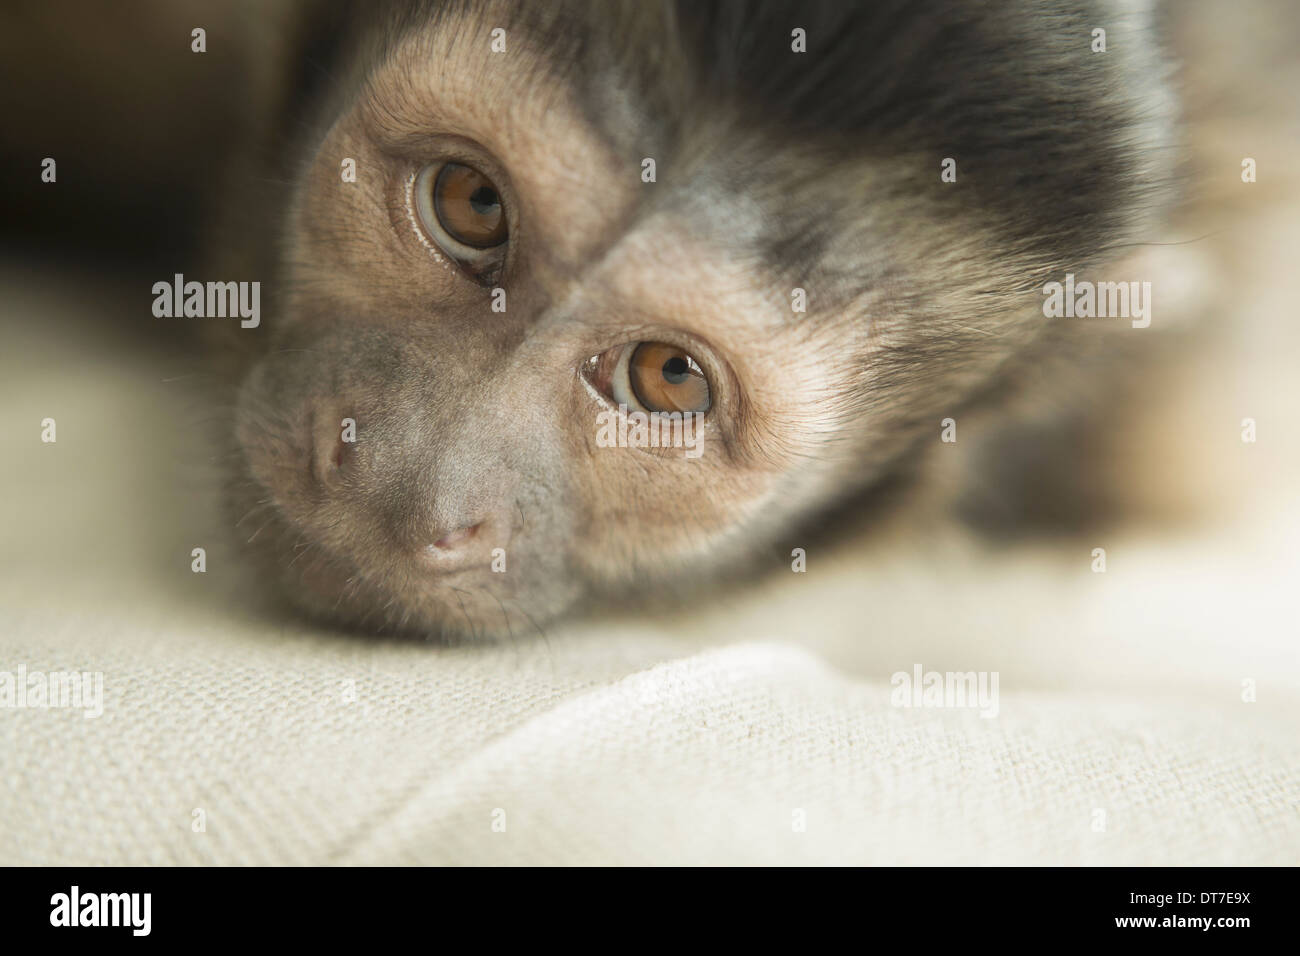 A capuchin monkey in a bedroom lying on an upholstered chair looking forlorn Austin Texas USA - Stock Image